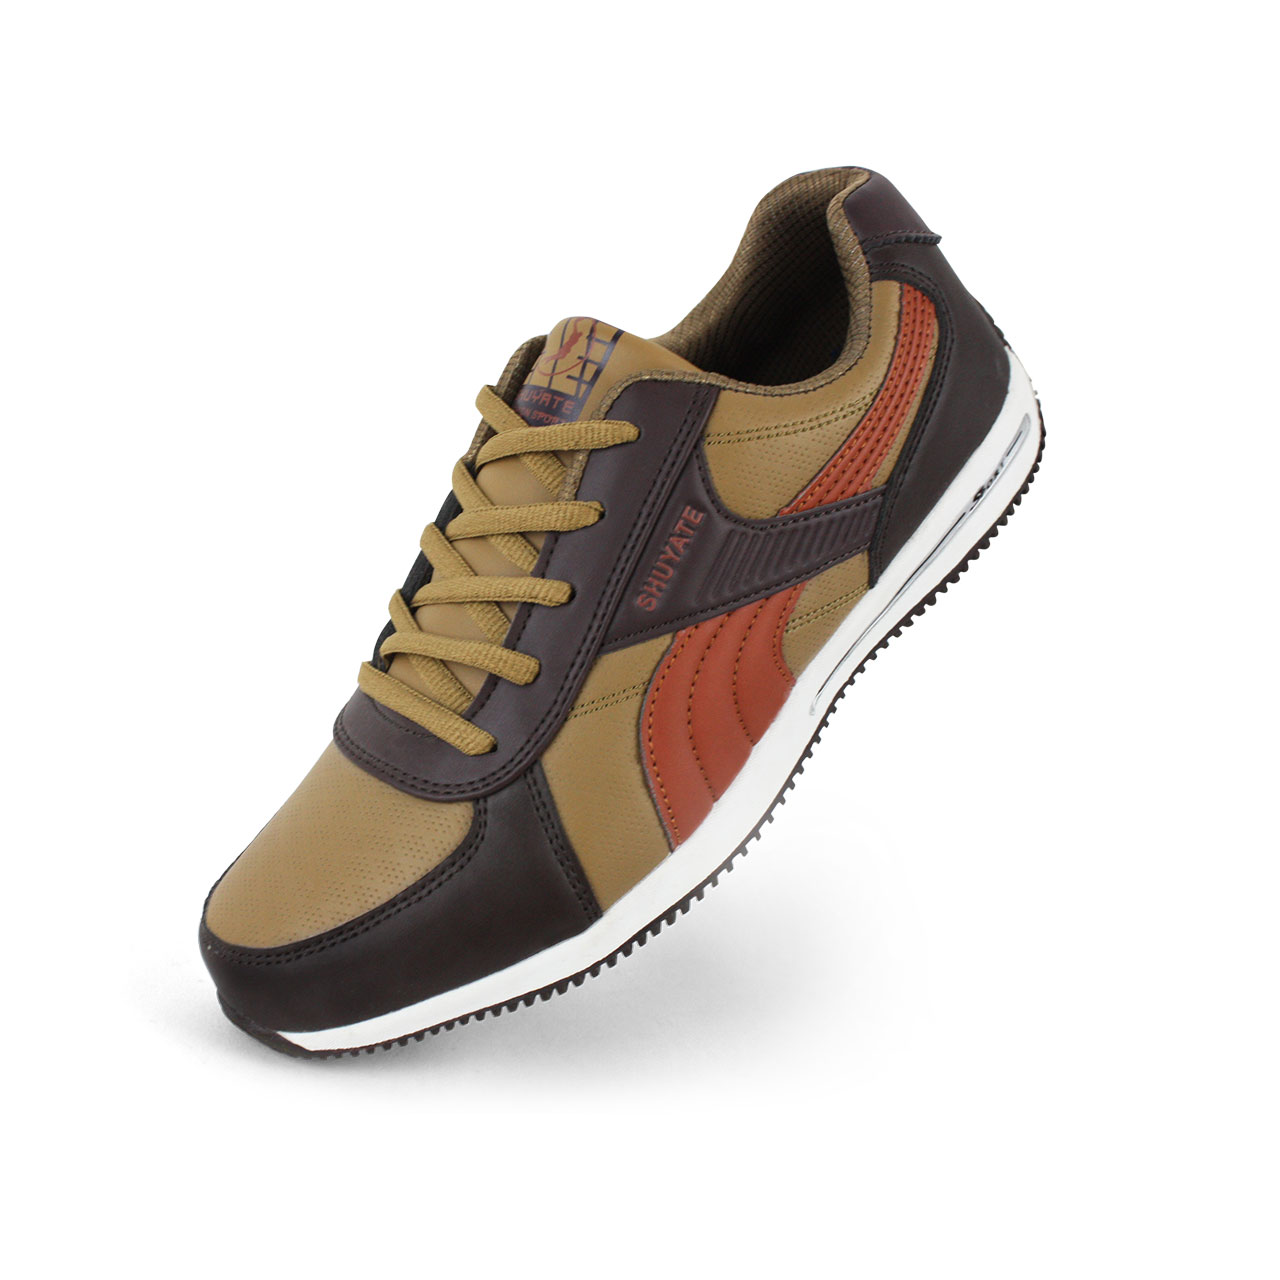 Men's Casual Leatherette Athletic Shoes